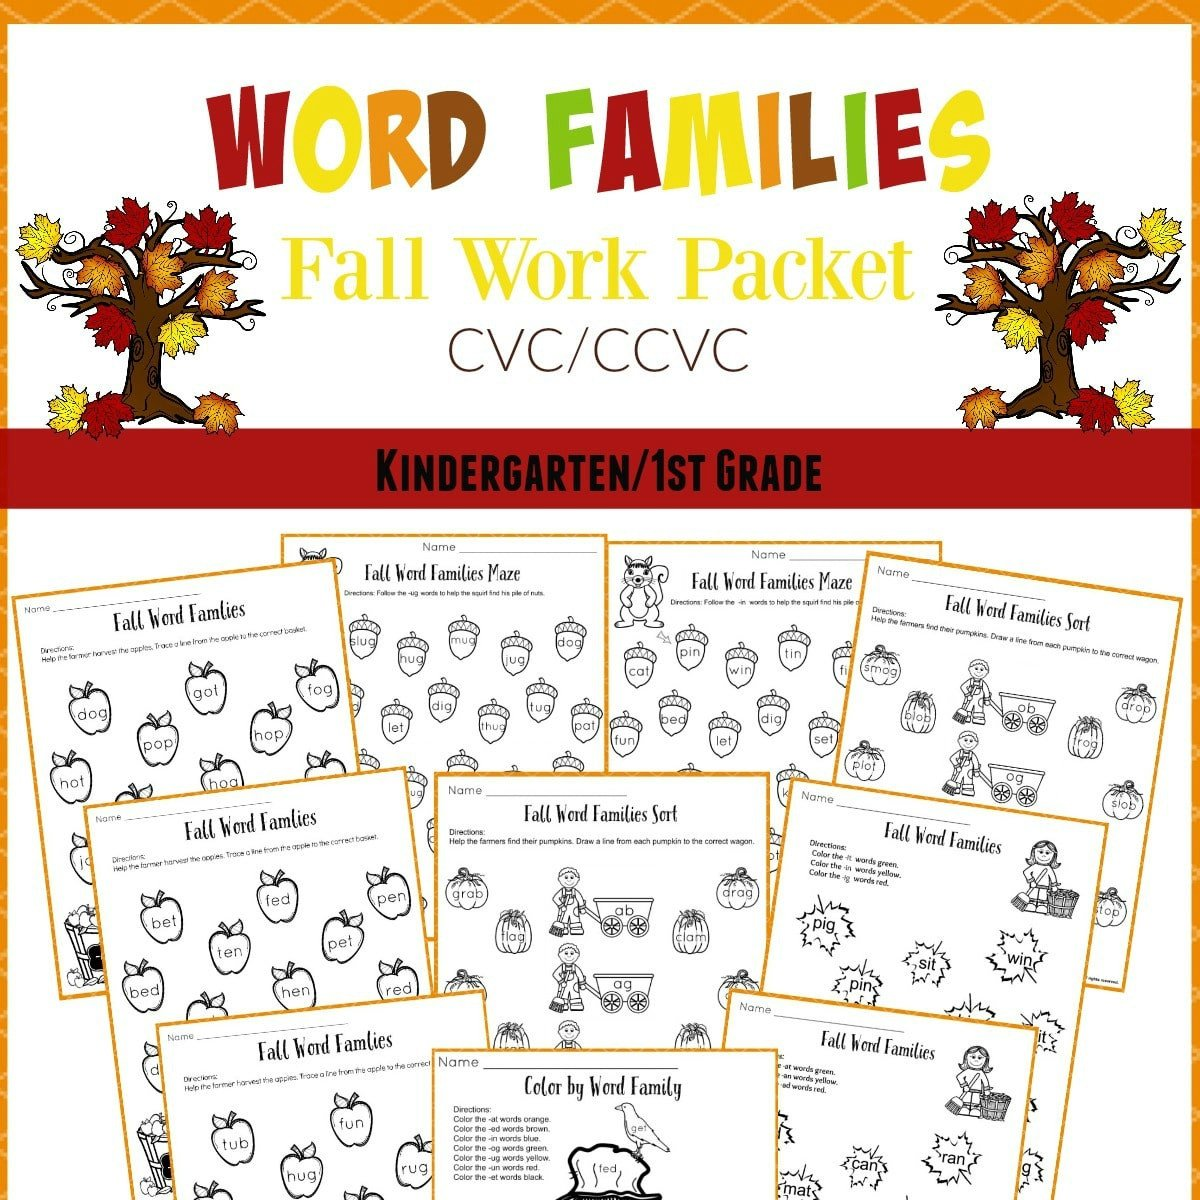 Fall Word Families Cover